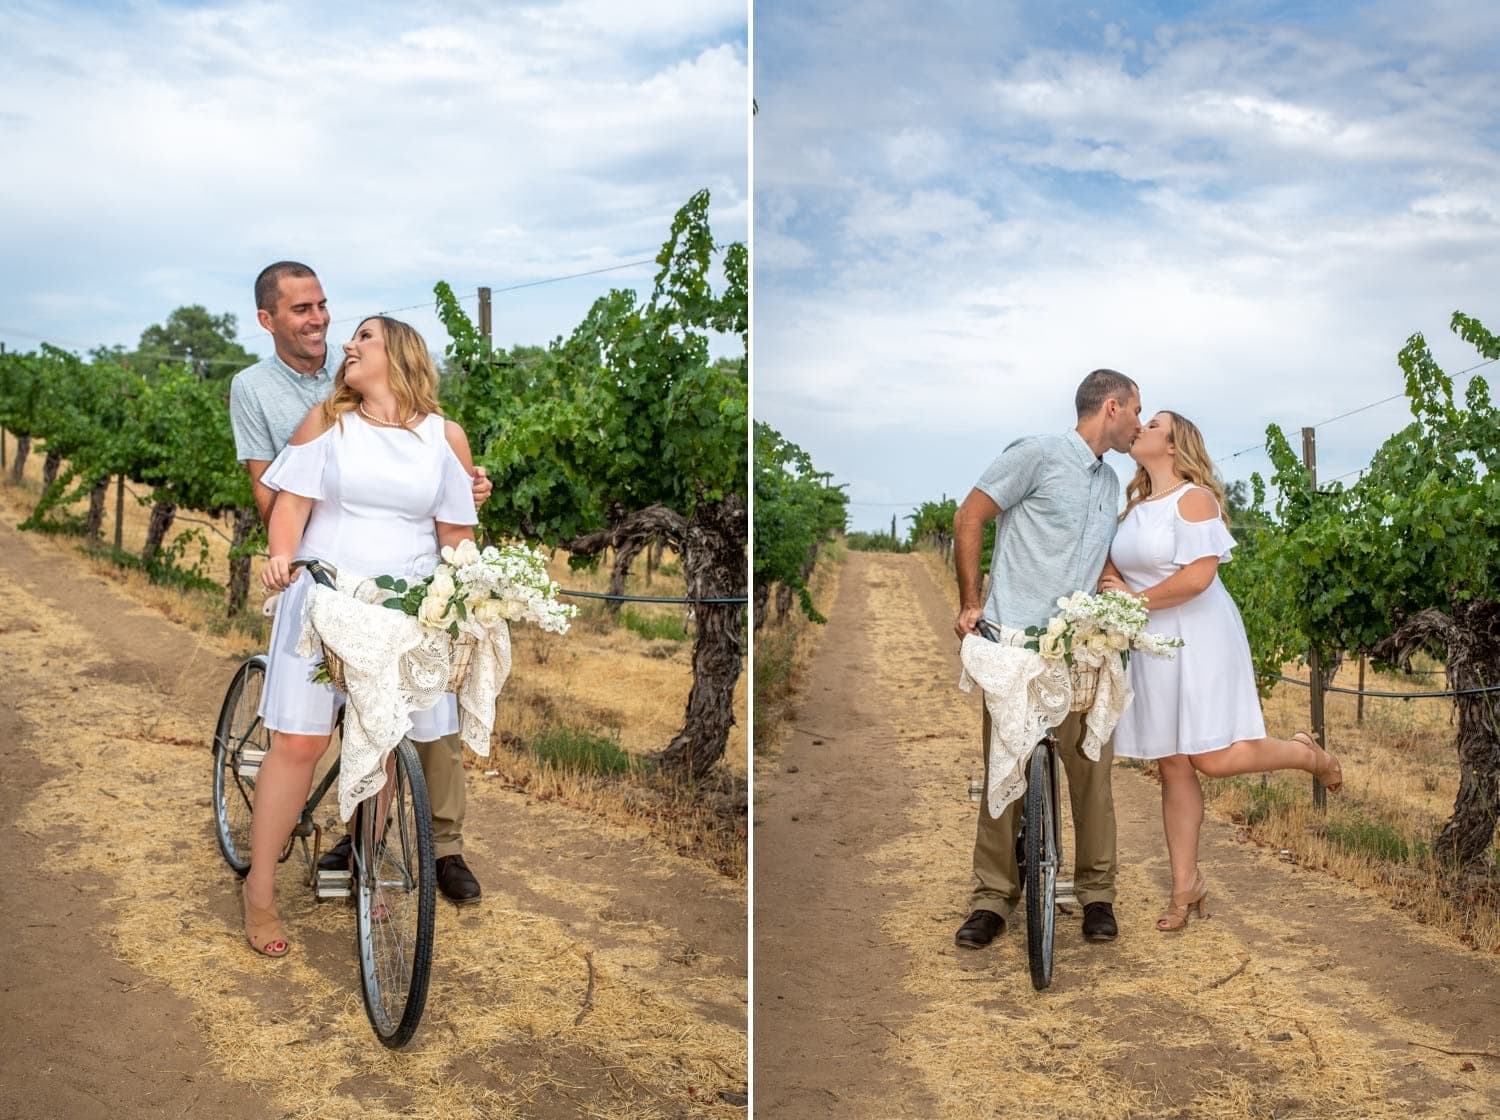 Engagement photos on a antique bicycle in the vines at a winery.